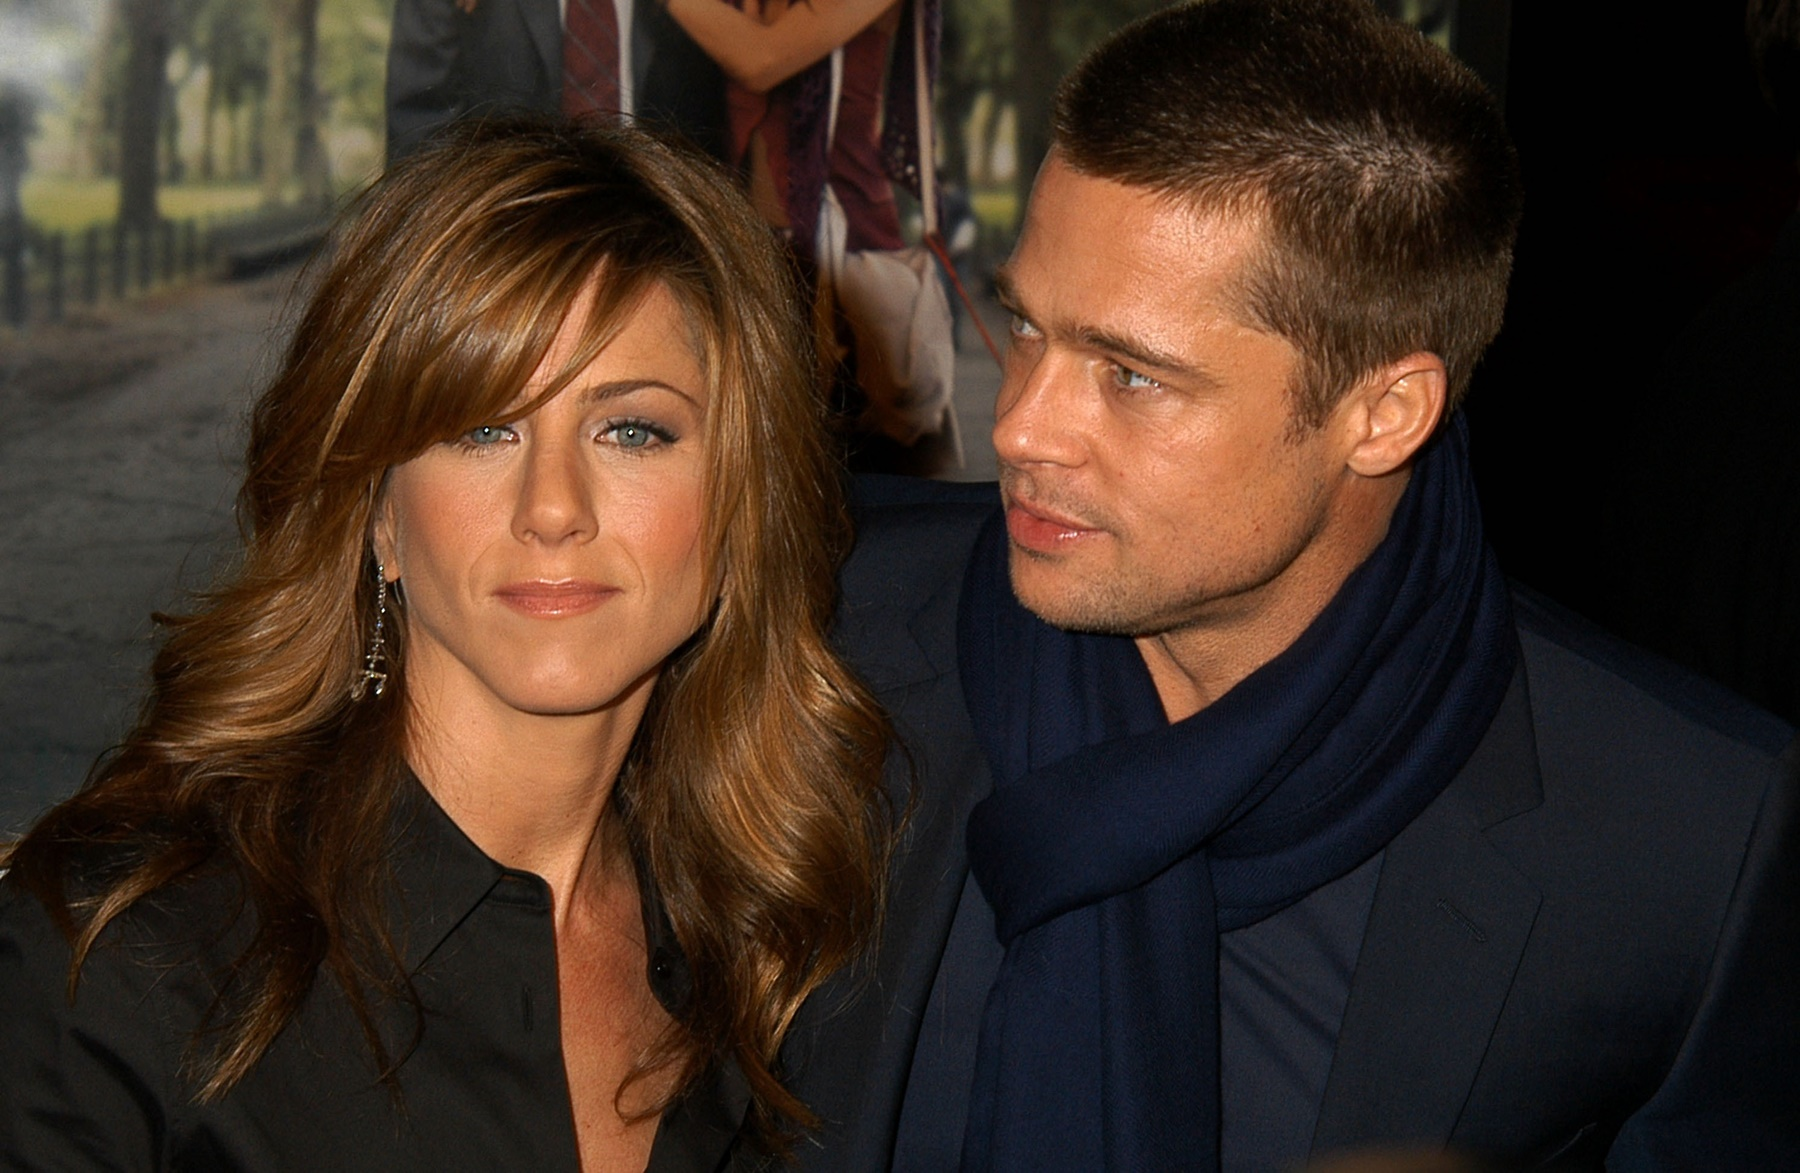 """brad-pitt-attends-jennifer-anistons-50th-birthday-party-will-angelina-jolie-punish-him-in-the-custody-battle"""